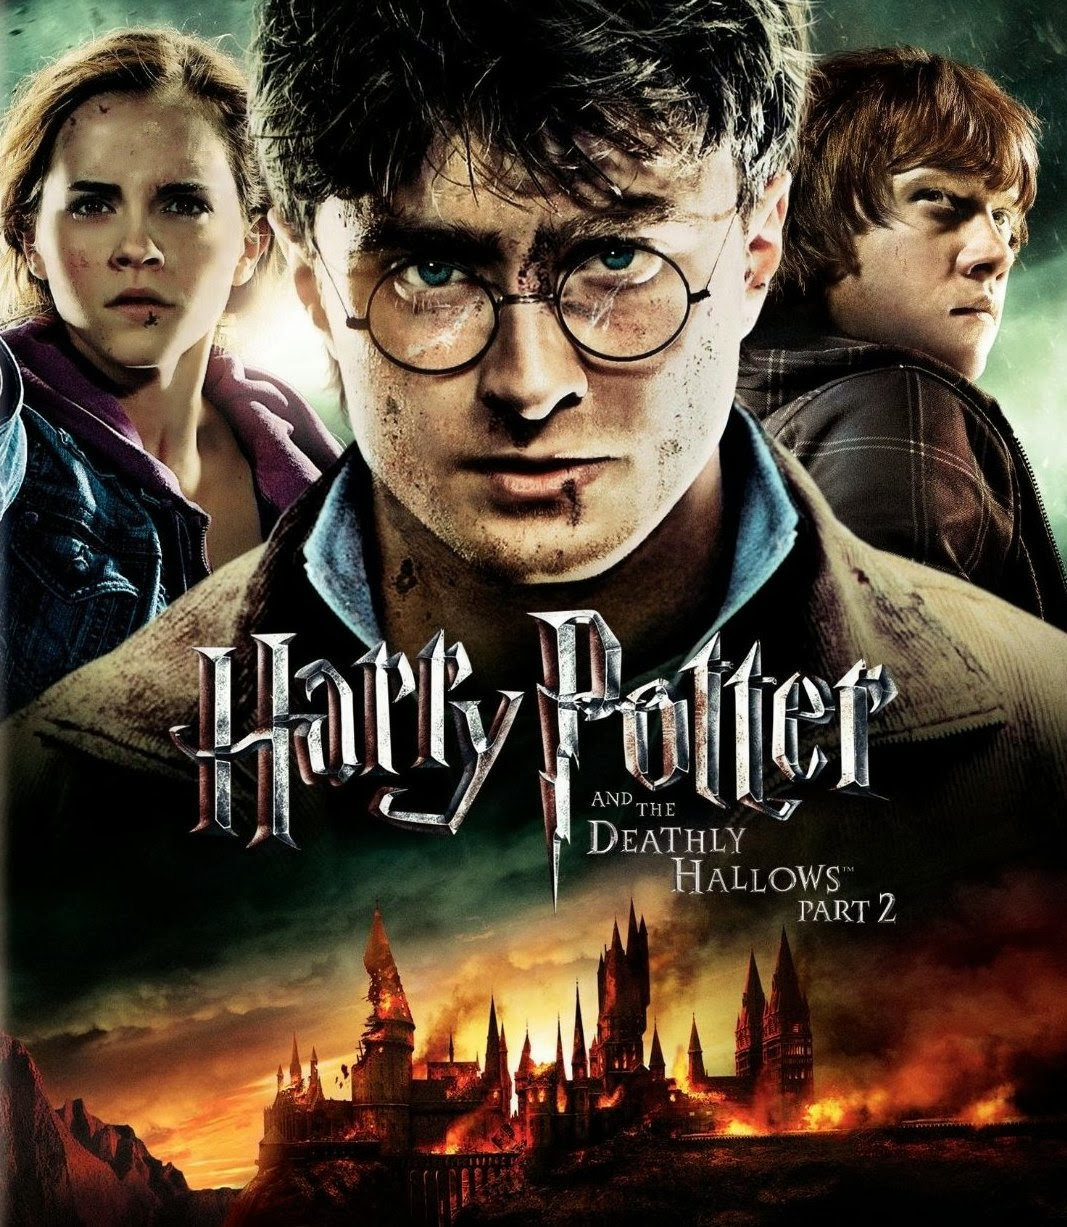 Mohammed Al Qassimi S Movies Harry Potter And The Deathly Hollows